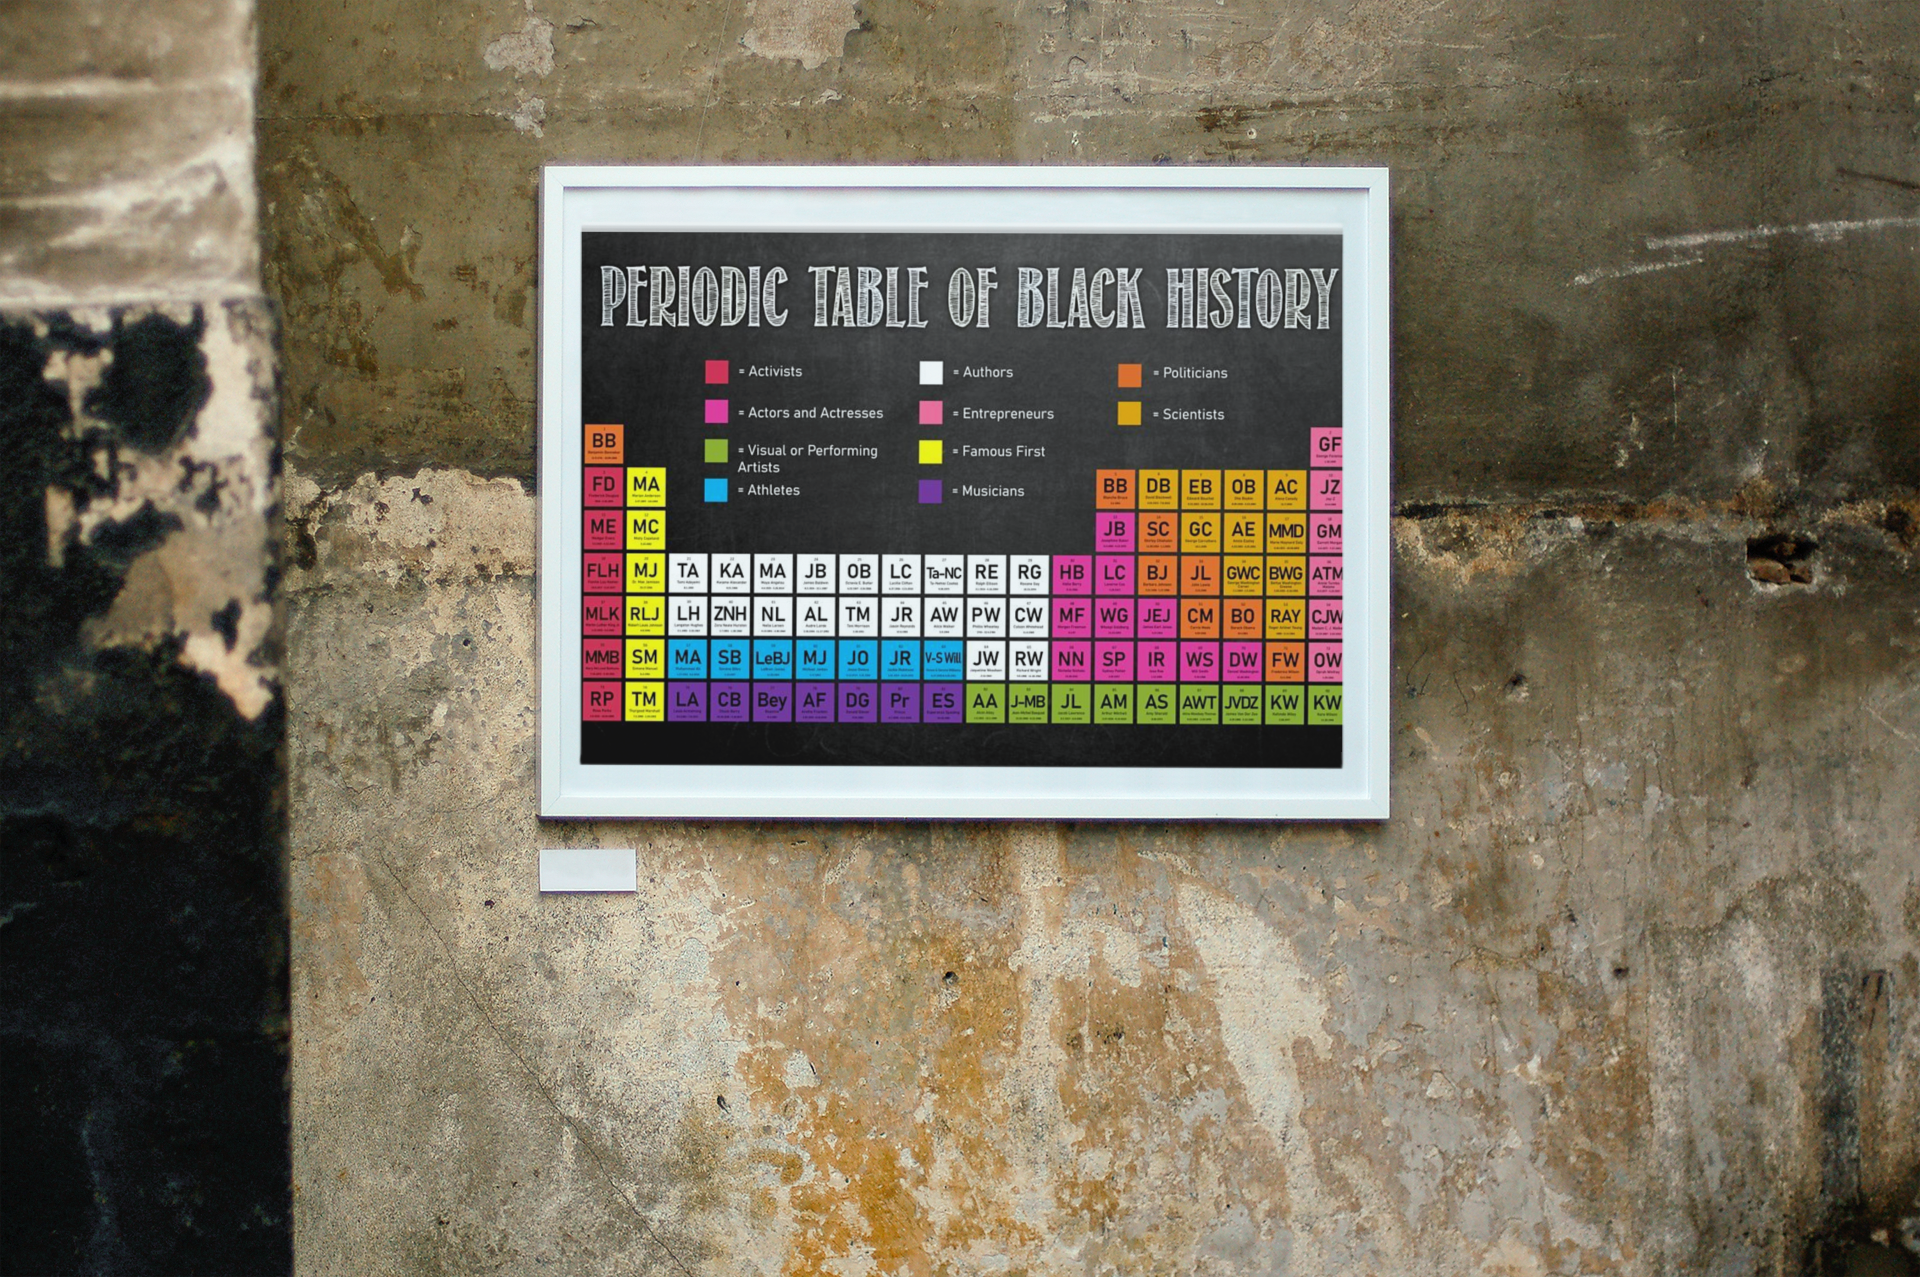 [LIMITED EDITION] Periodic table of black history poster